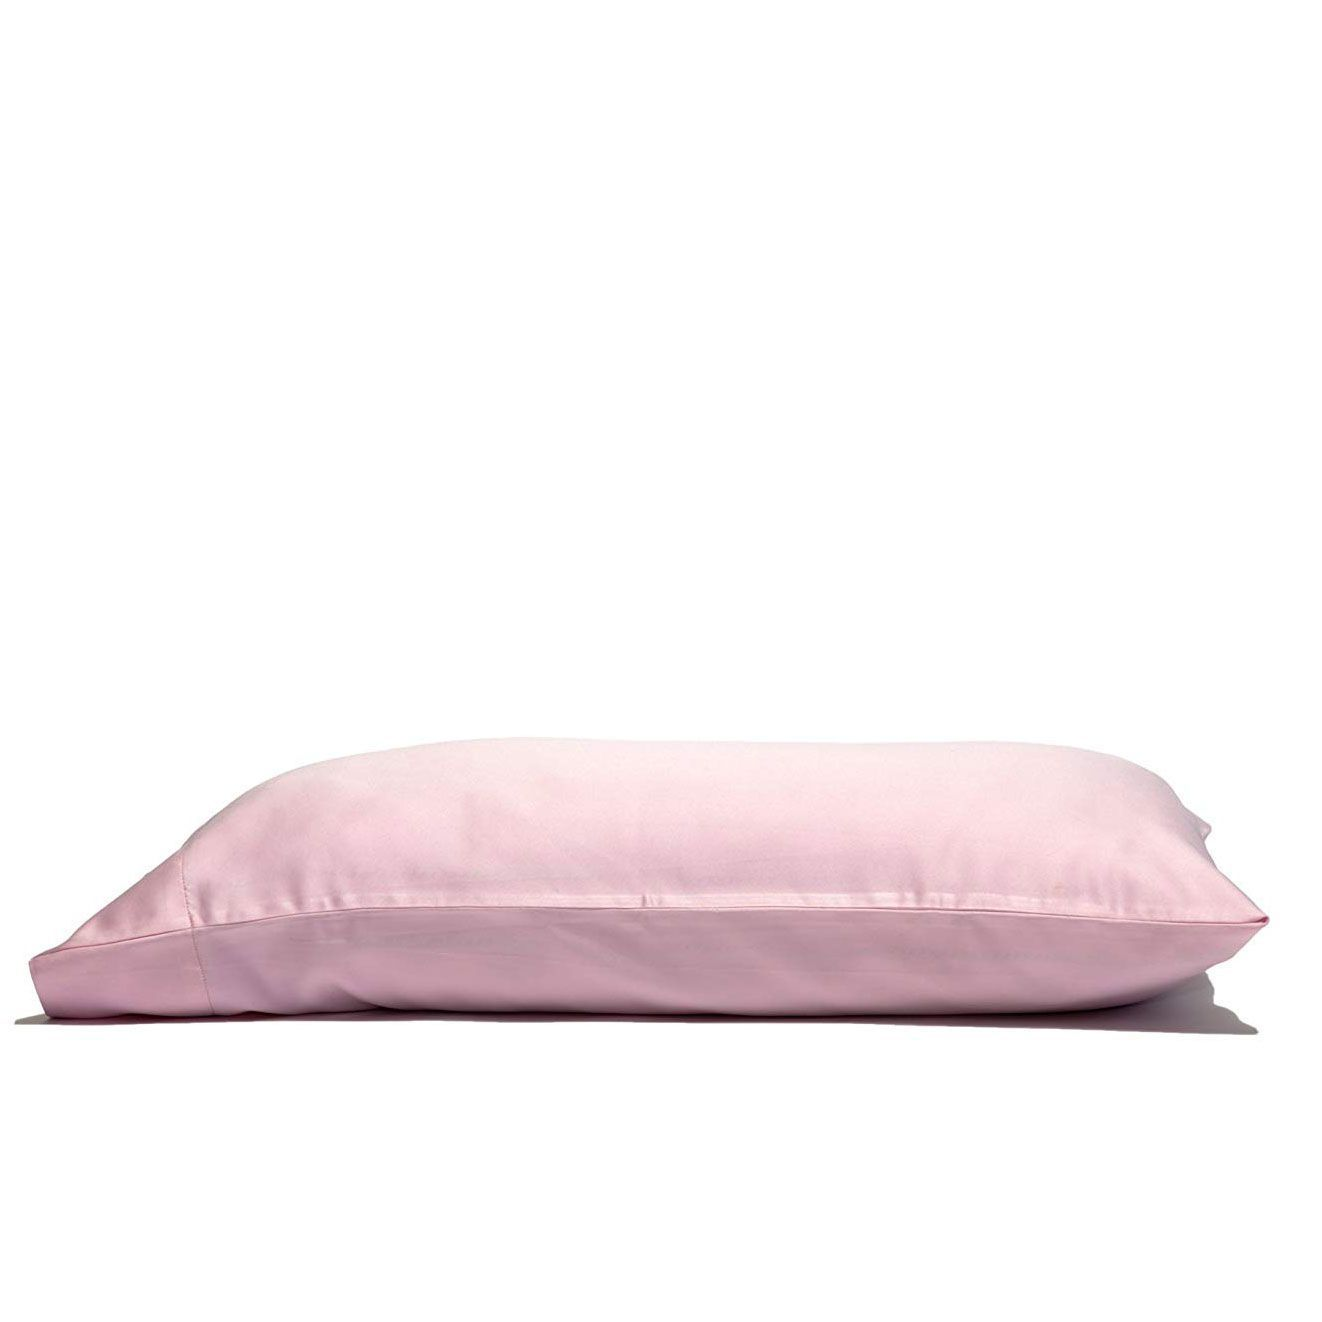 Satin Pillowcases With Zipper Most Durable Savvy Sleepers Anti Aging 100 Satin Pillow Case